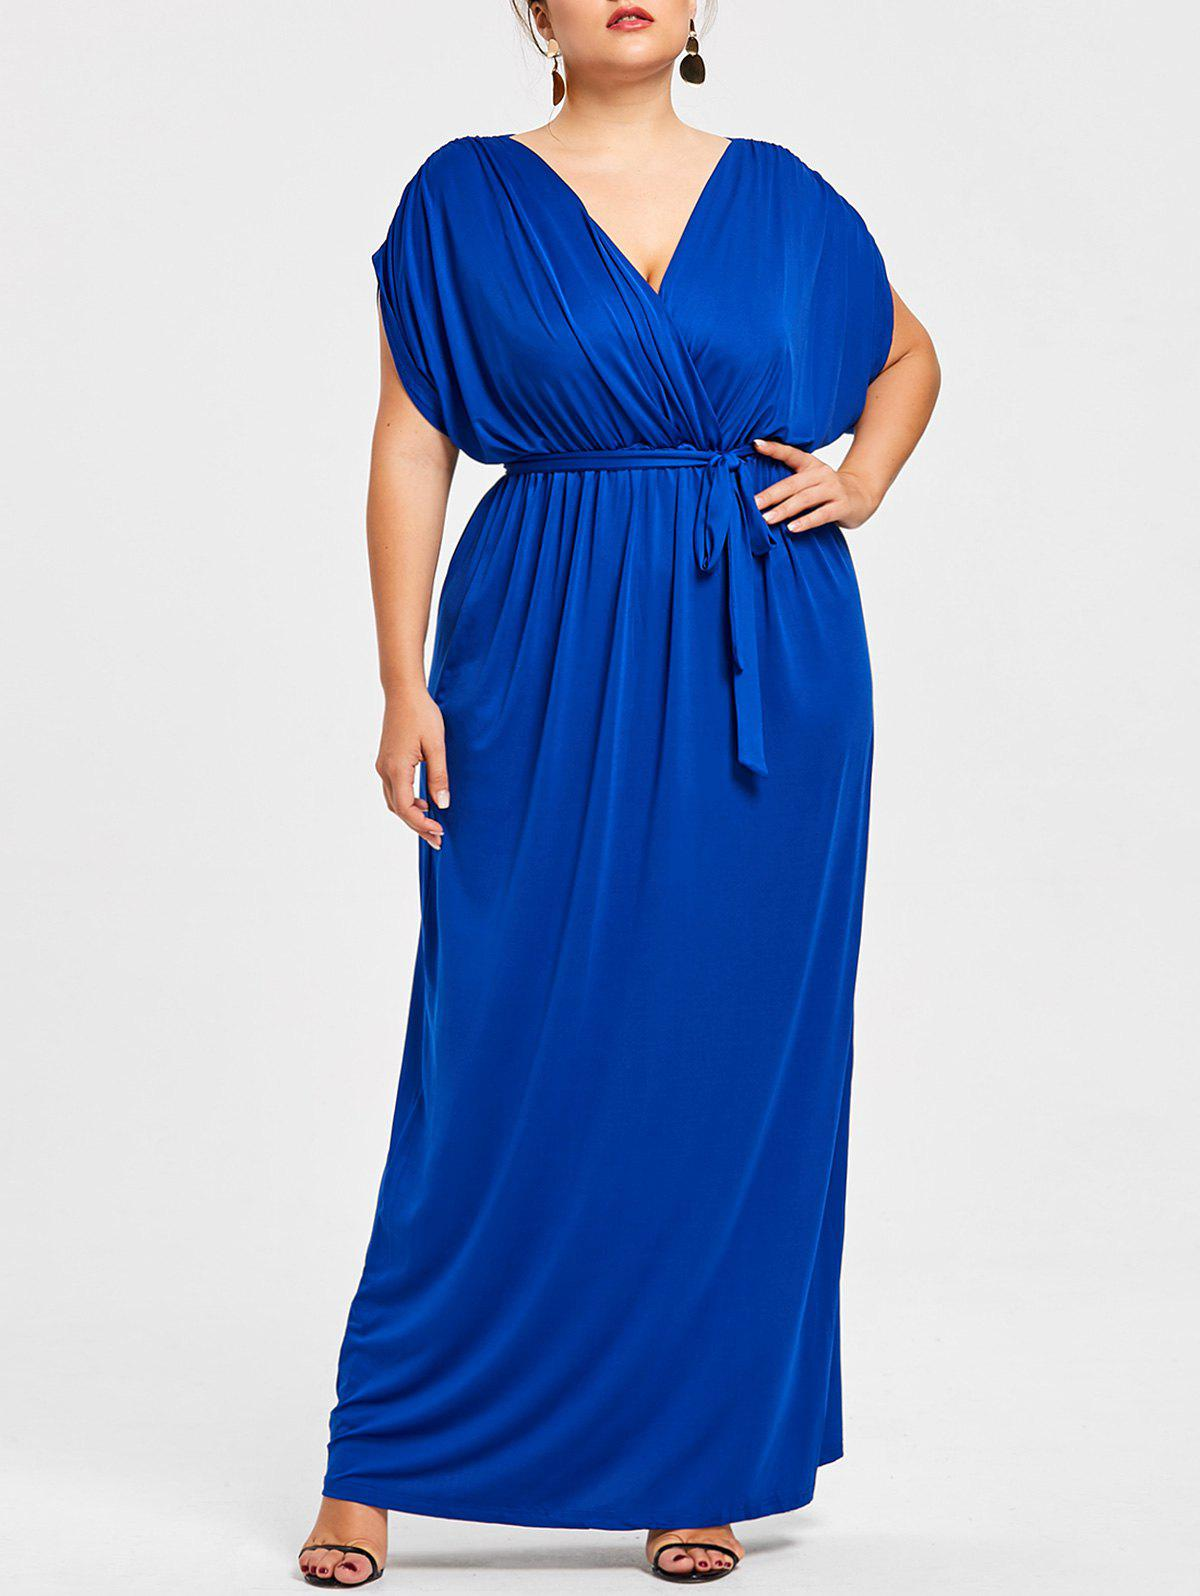 Hot Short Sleeve Plus Size Longline Dress